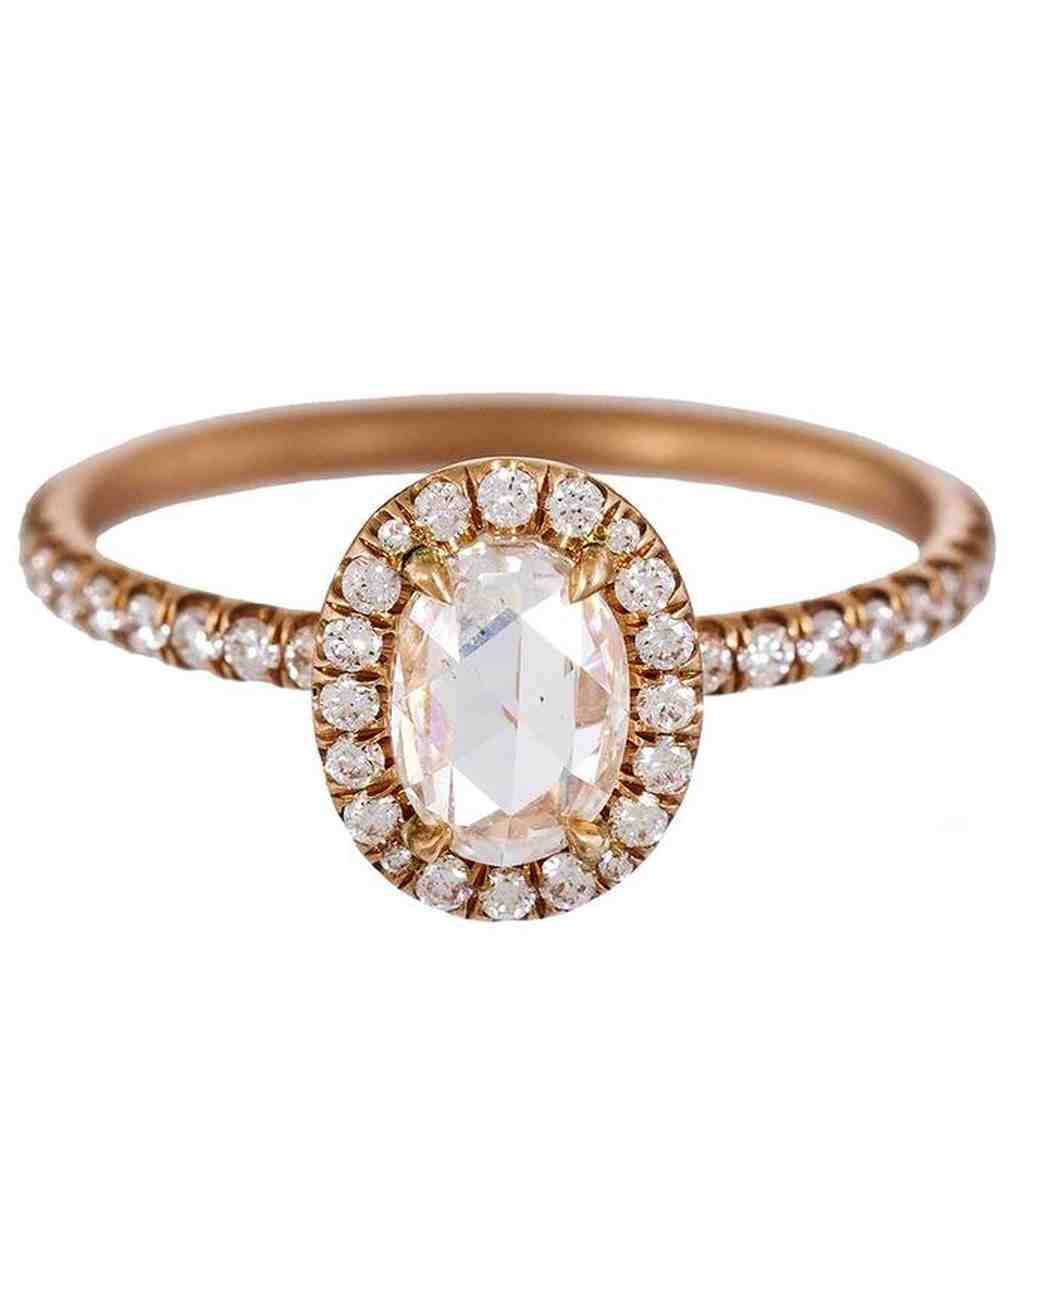 Engagement Rings : Stunning Engagement Rings Without Stones Simple Within Engagement Ring Settings Without Stones (View 10 of 15)